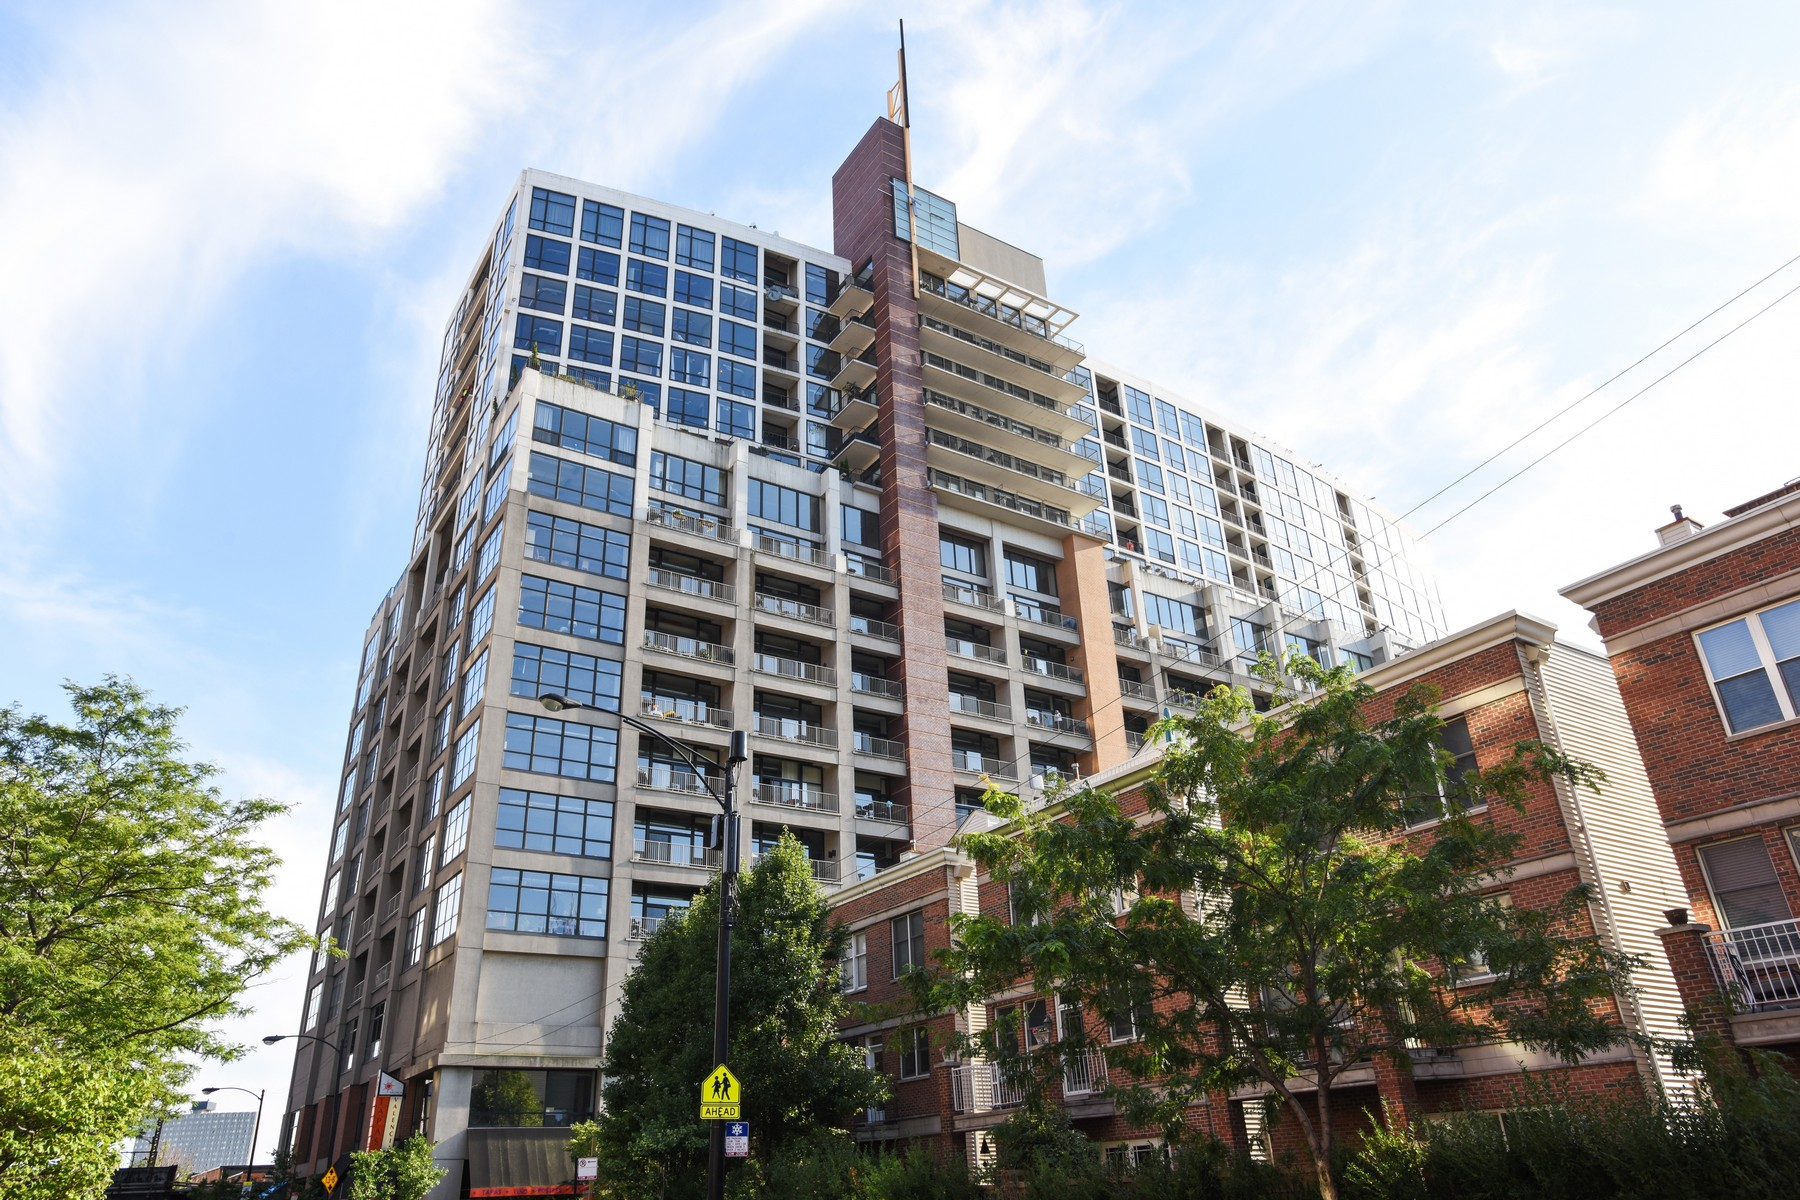 Duplex for Sale at Dramatic Duplexed Home 1530 S State Street Unit 1017 Chicago, Illinois 60605 United States